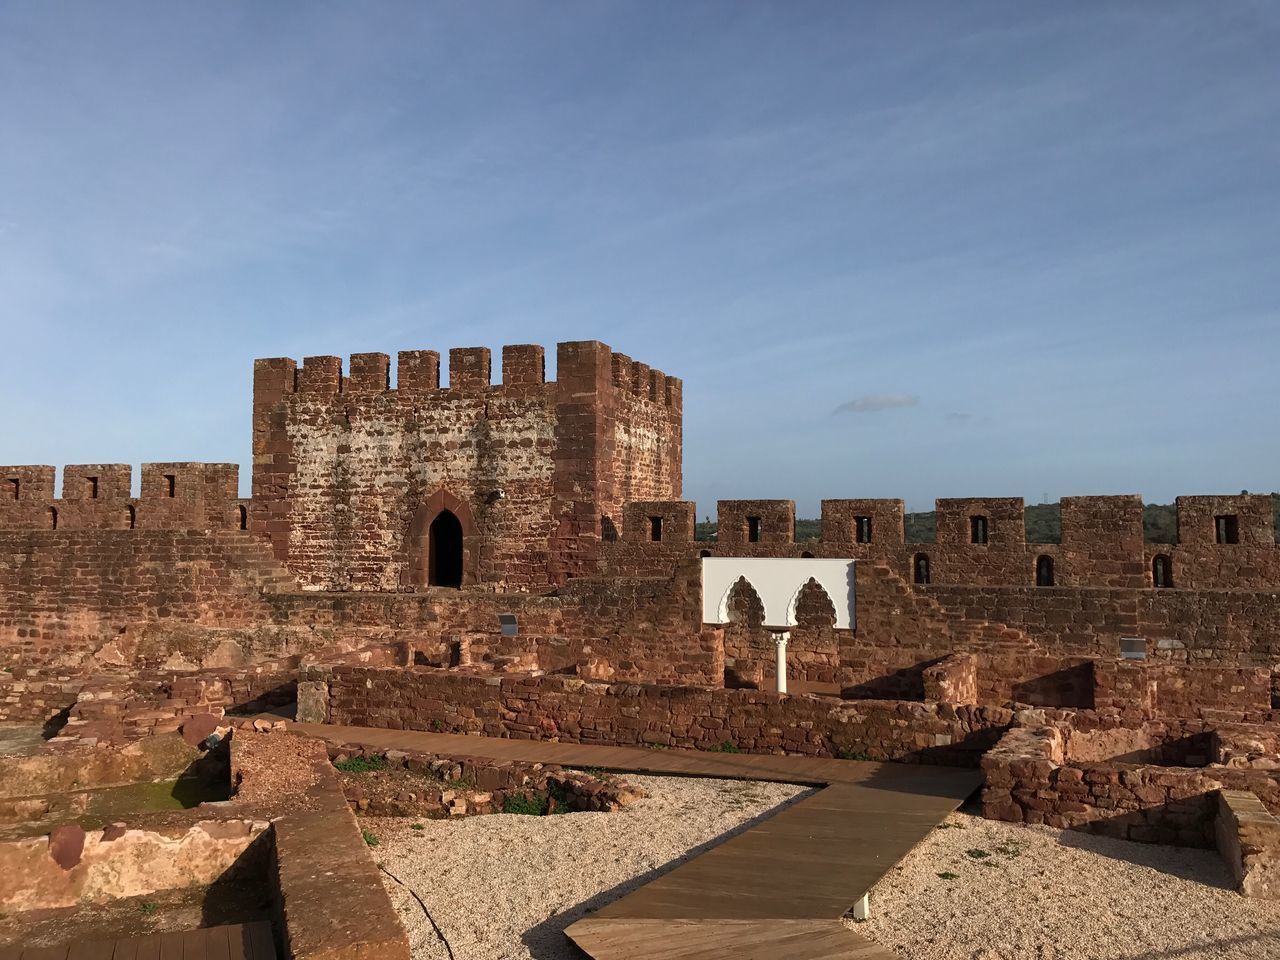 Silves Castle Silves Castelo Silves Silves Fort History Architecture Built Structure Old Ruin The Past Ancient Travel Destinations Sky Travel Building Exterior Tourism Ruined Day Ancient Civilization Outdoors Medieval No People Fort Ancient History Fortress